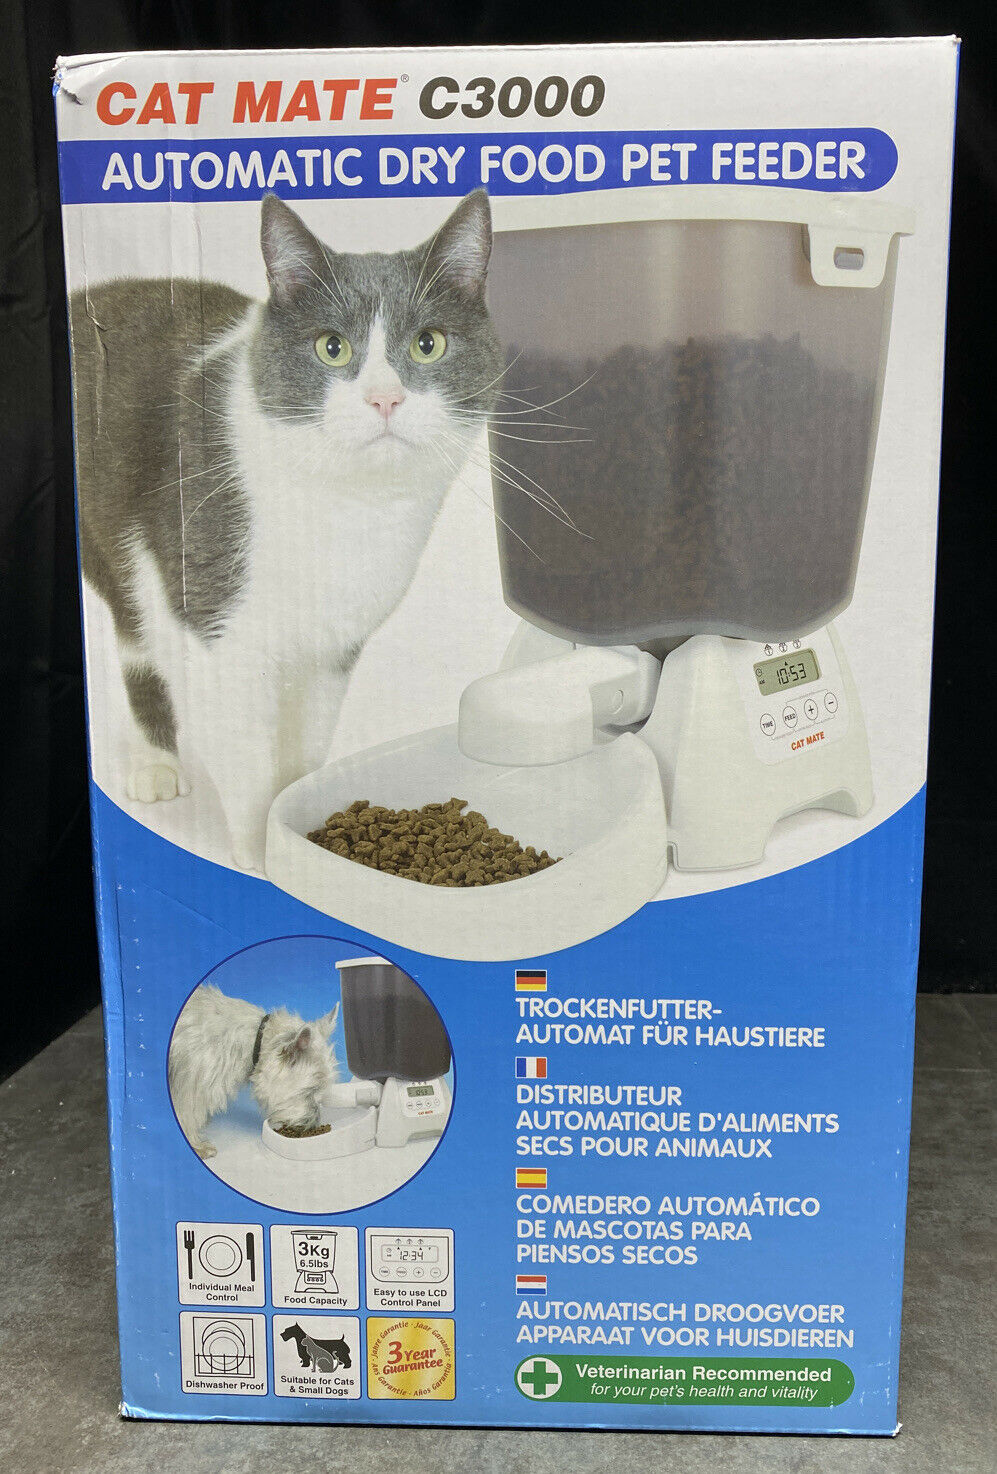 Cat Mate C3000 Automatic Dry Food Pet Feeder V8252f For Sale Online Ebay